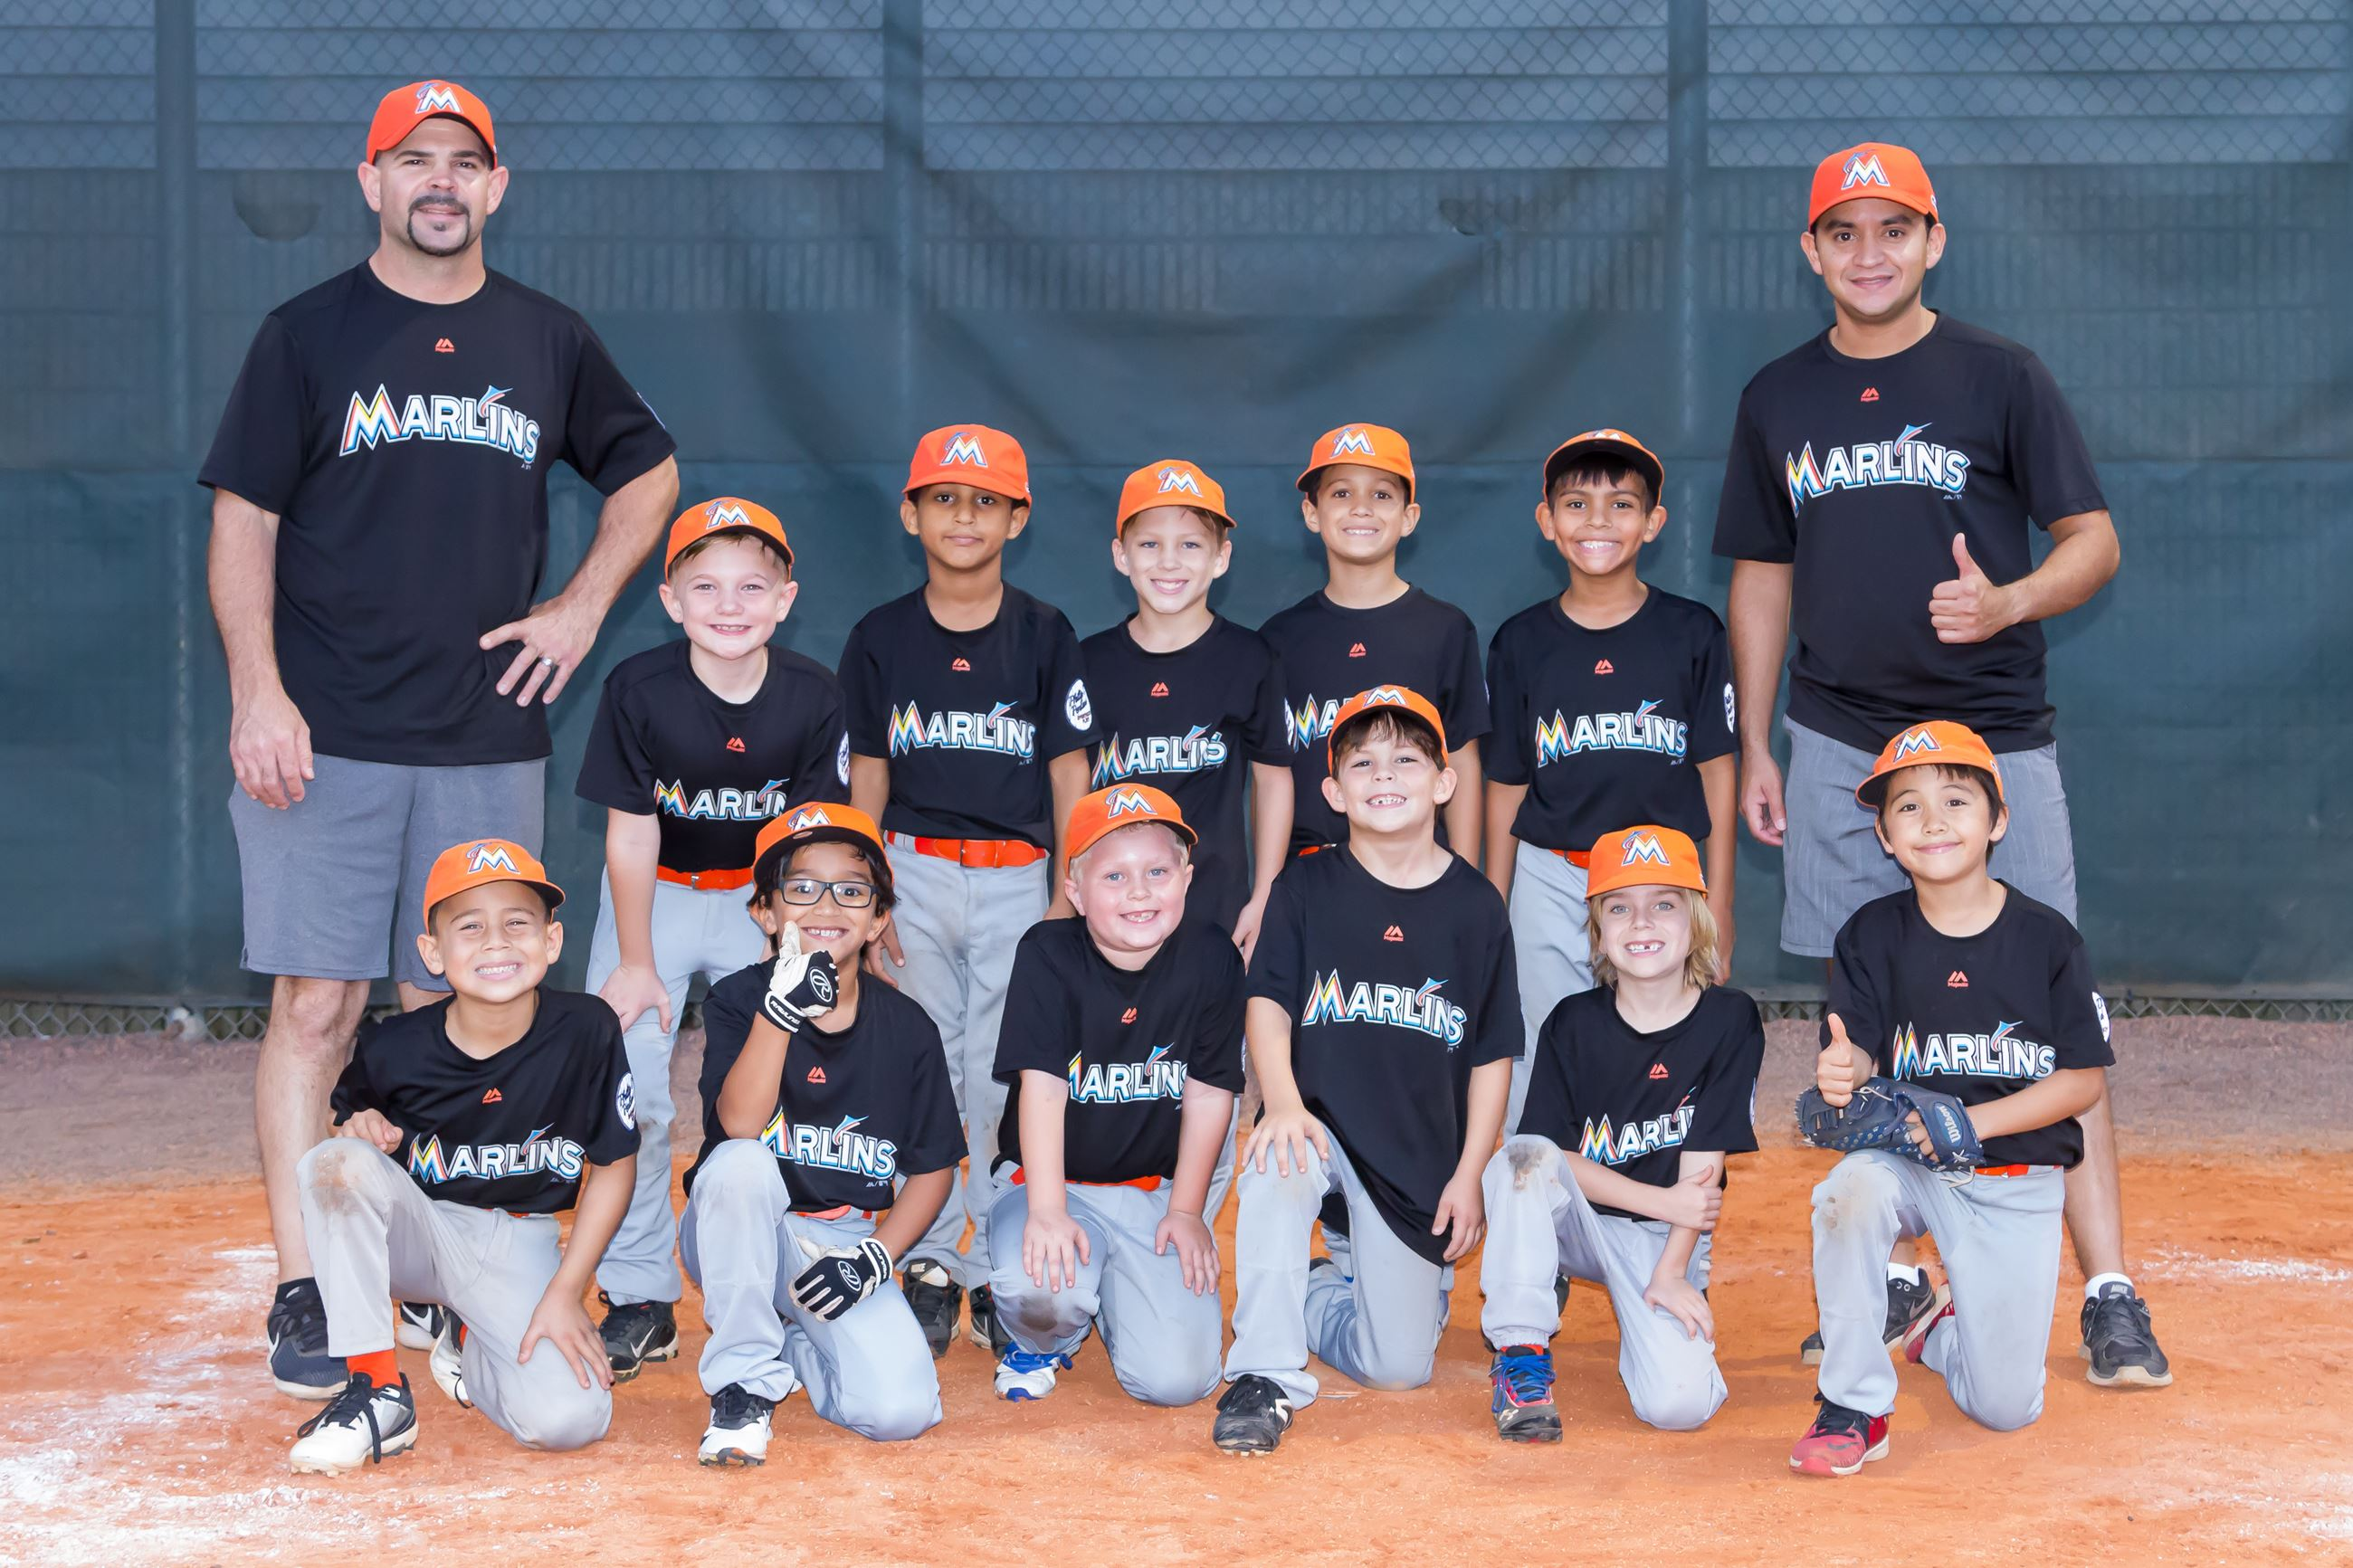 Marlins Baseball Team Photo